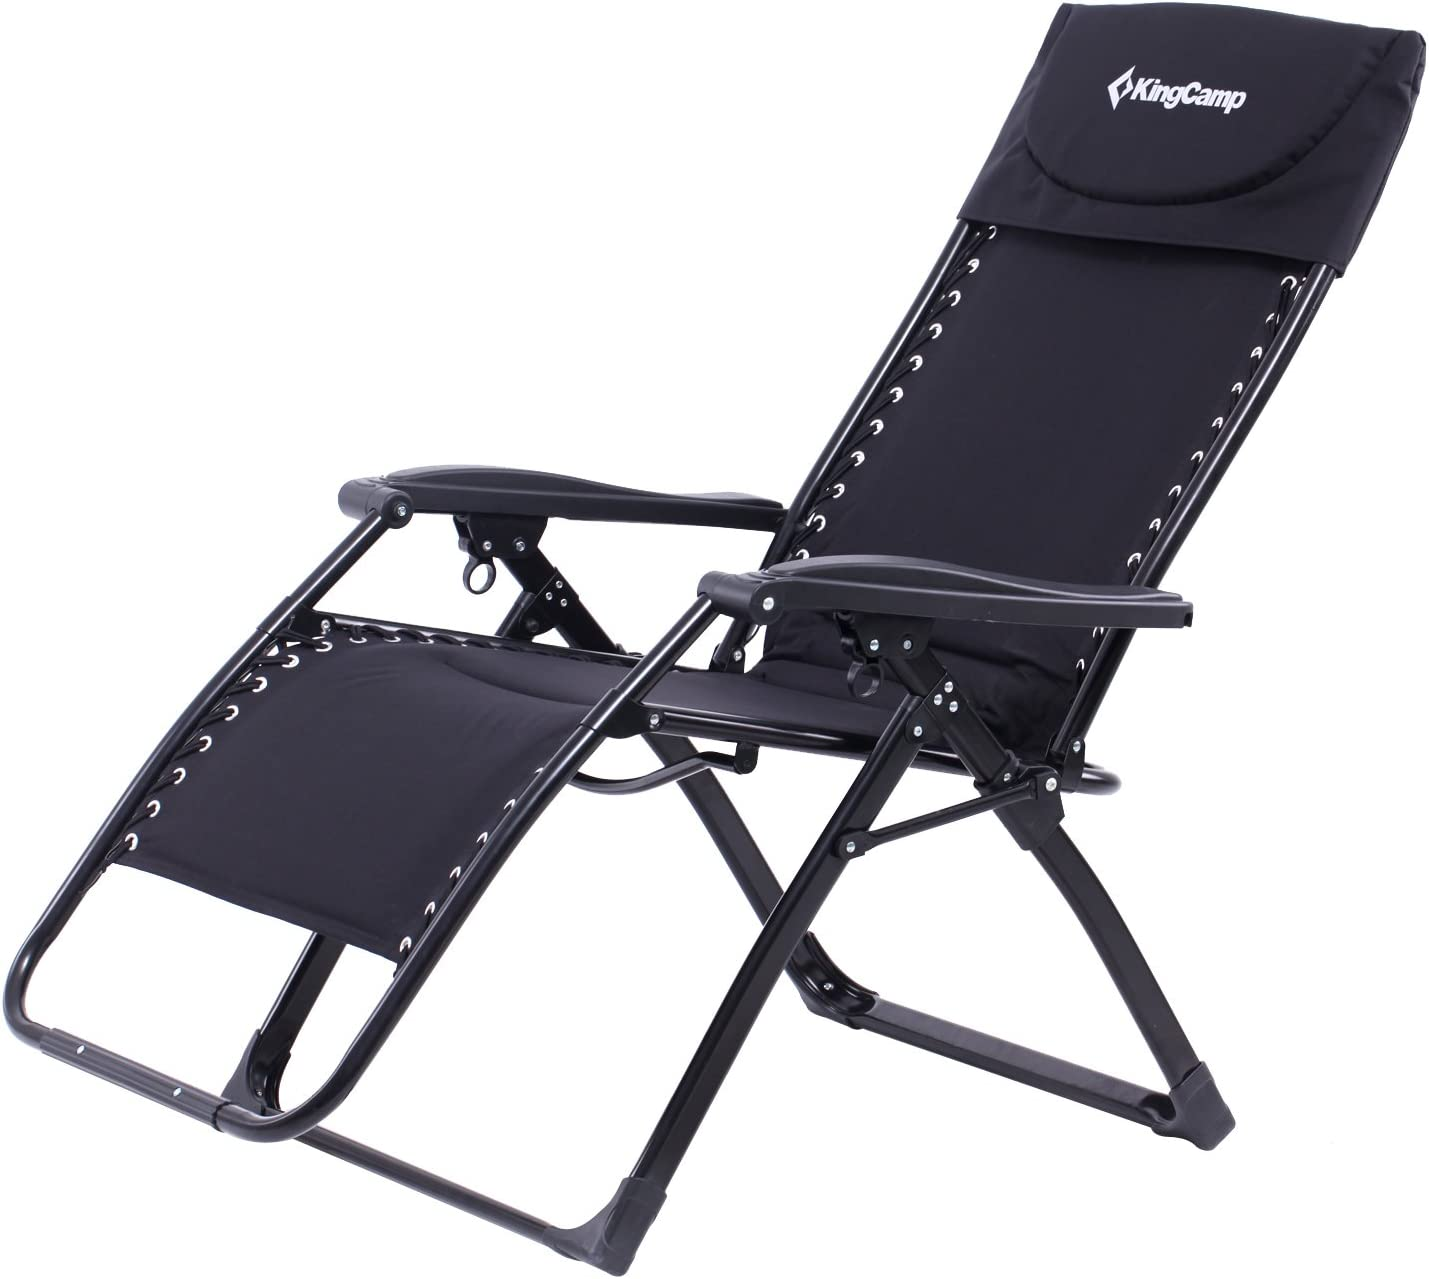 KingCamp Oversized Zero Gravity Chair Reviews